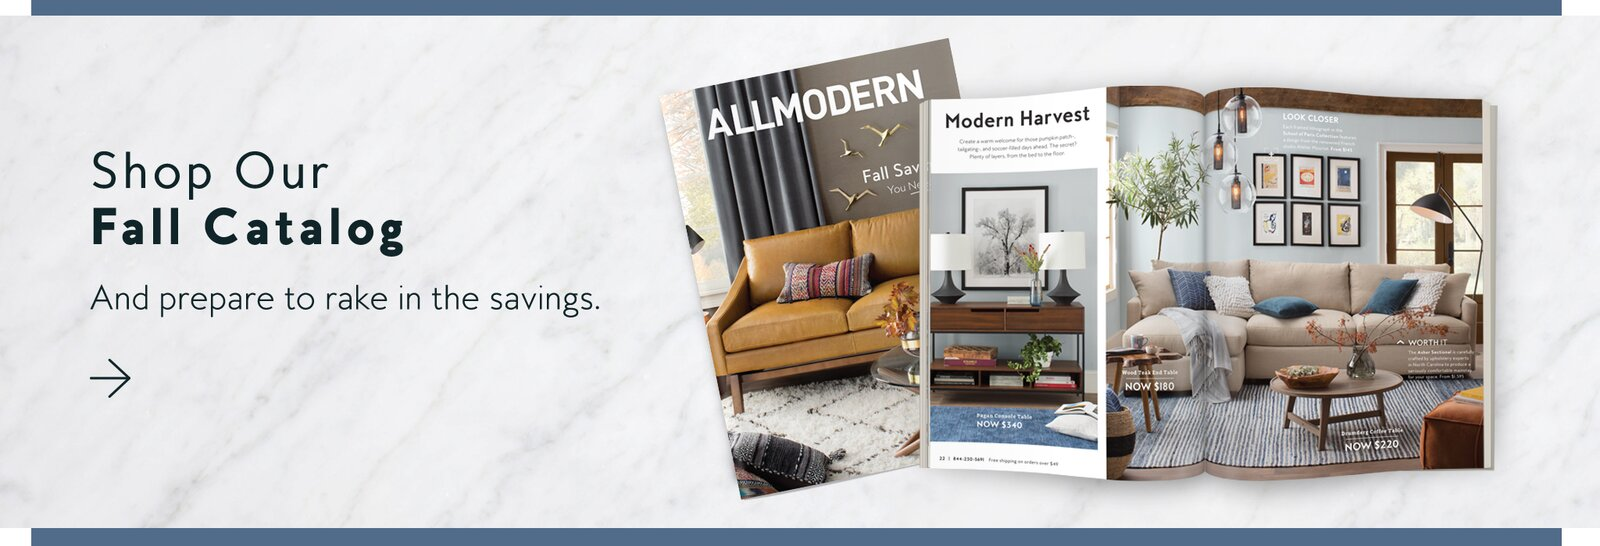 modern furniture and decor for your home and office - next